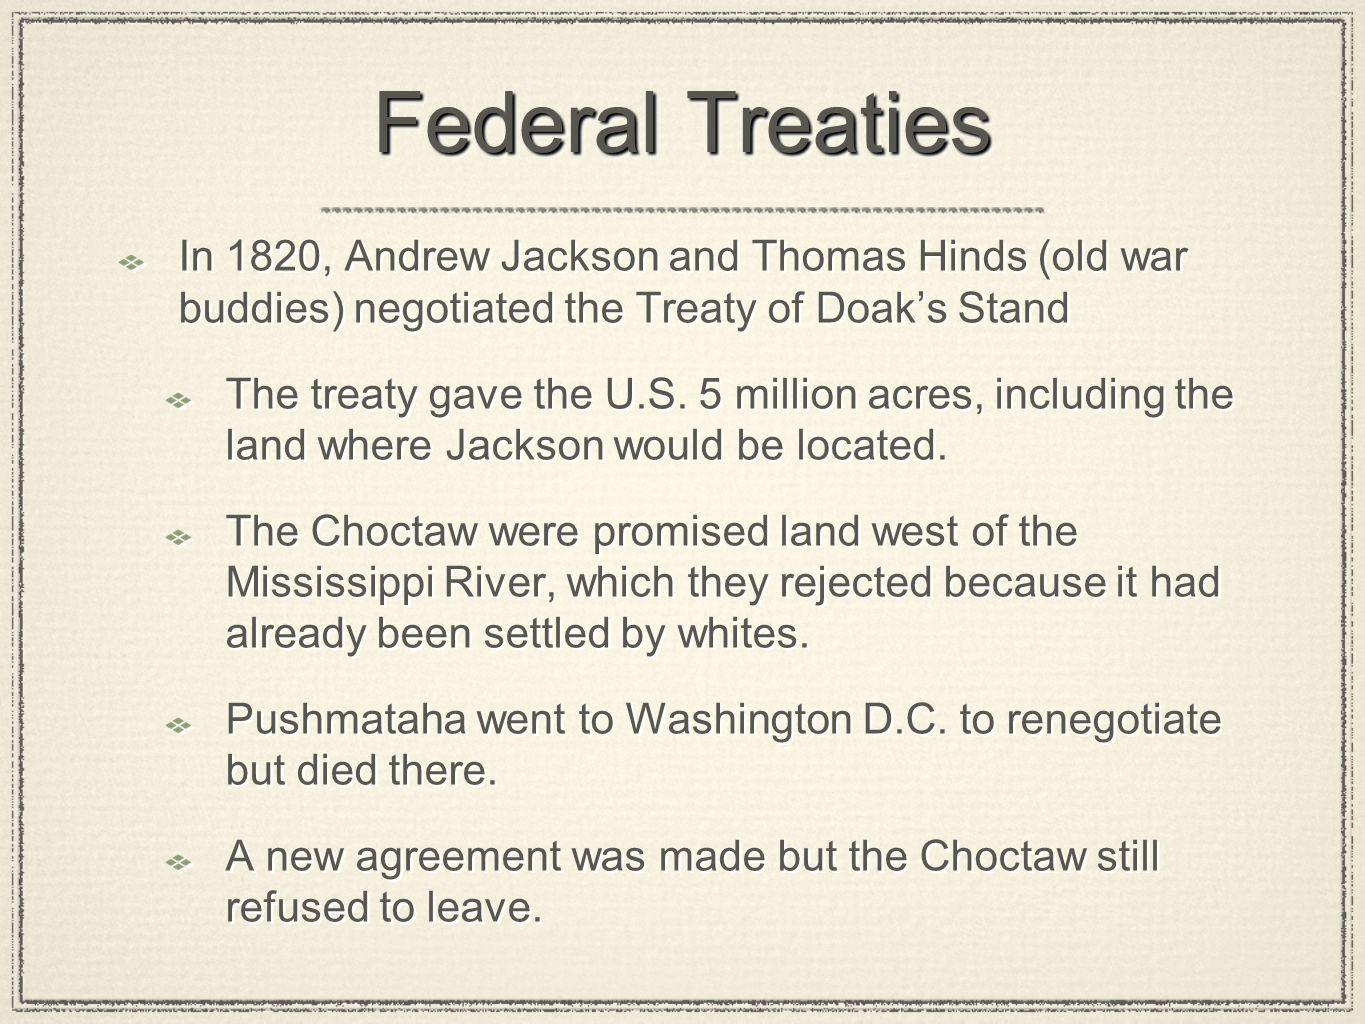 Federal Treaties In 1820, Andrew Jackson and Thomas Hinds (old war buddies) negotiated the Treaty of Doak's Stand.